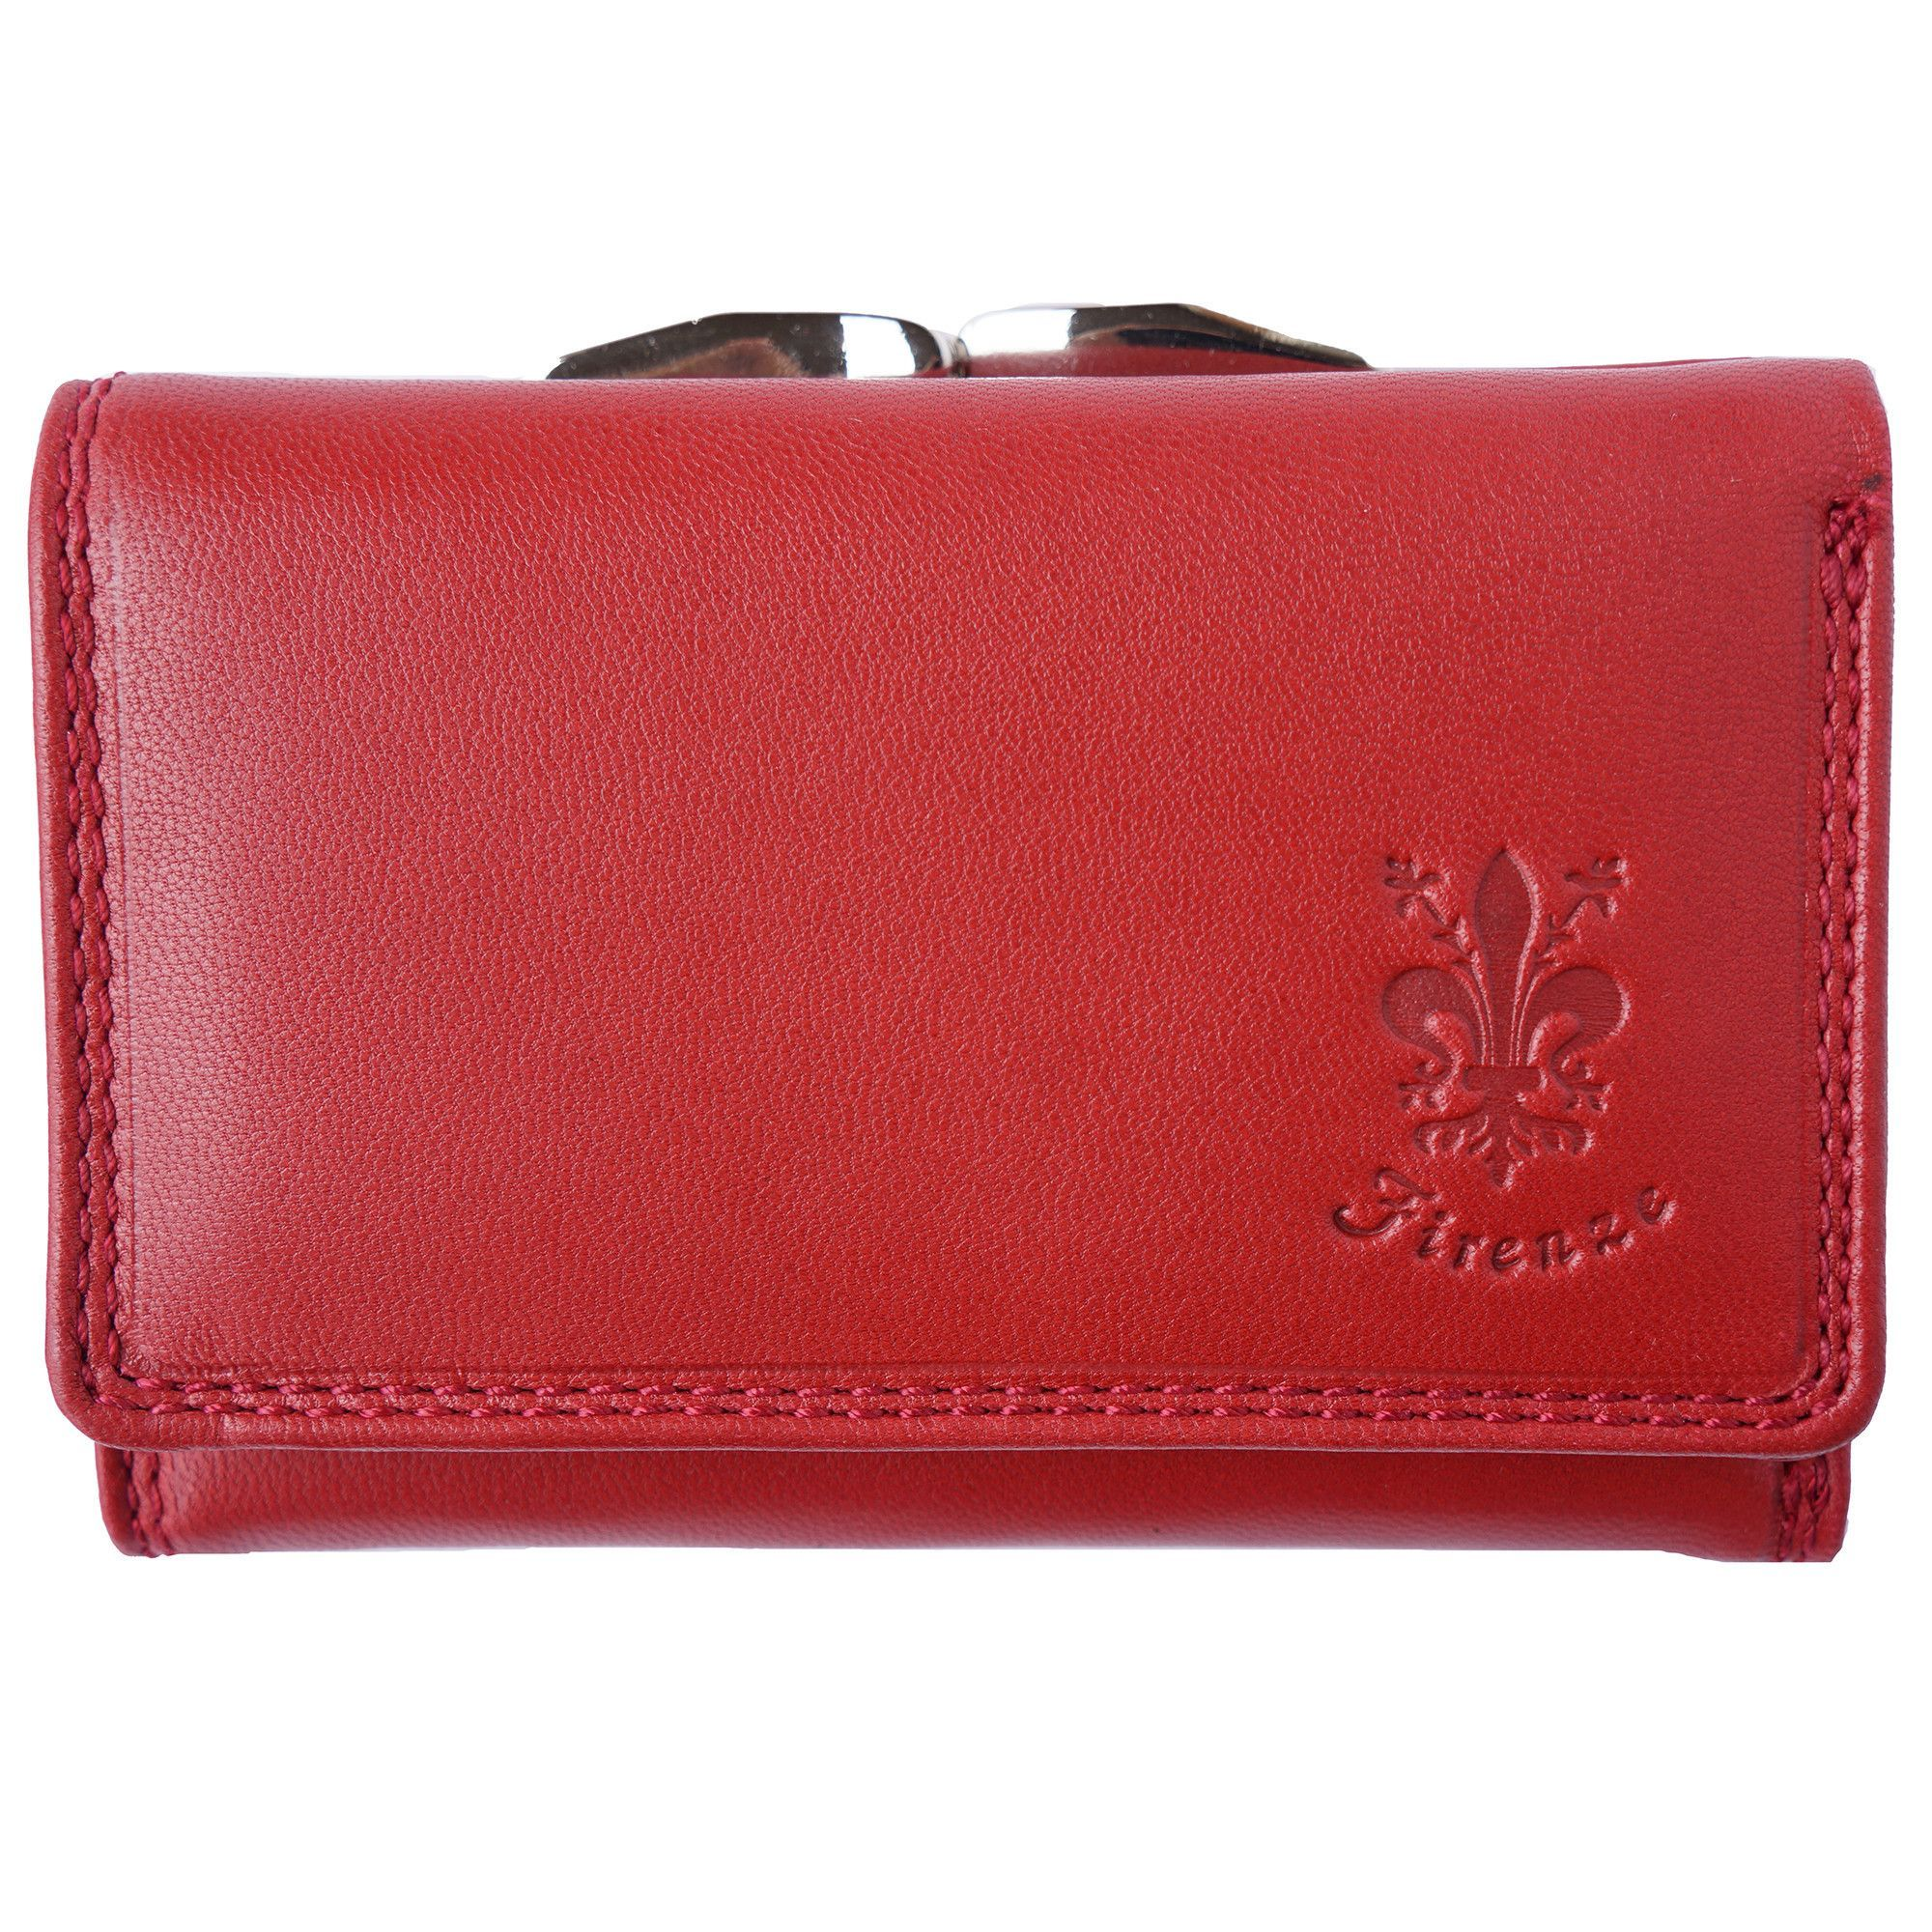 7fc25697e08d Leather wallet with snap-clip closure | Products | Pinterest